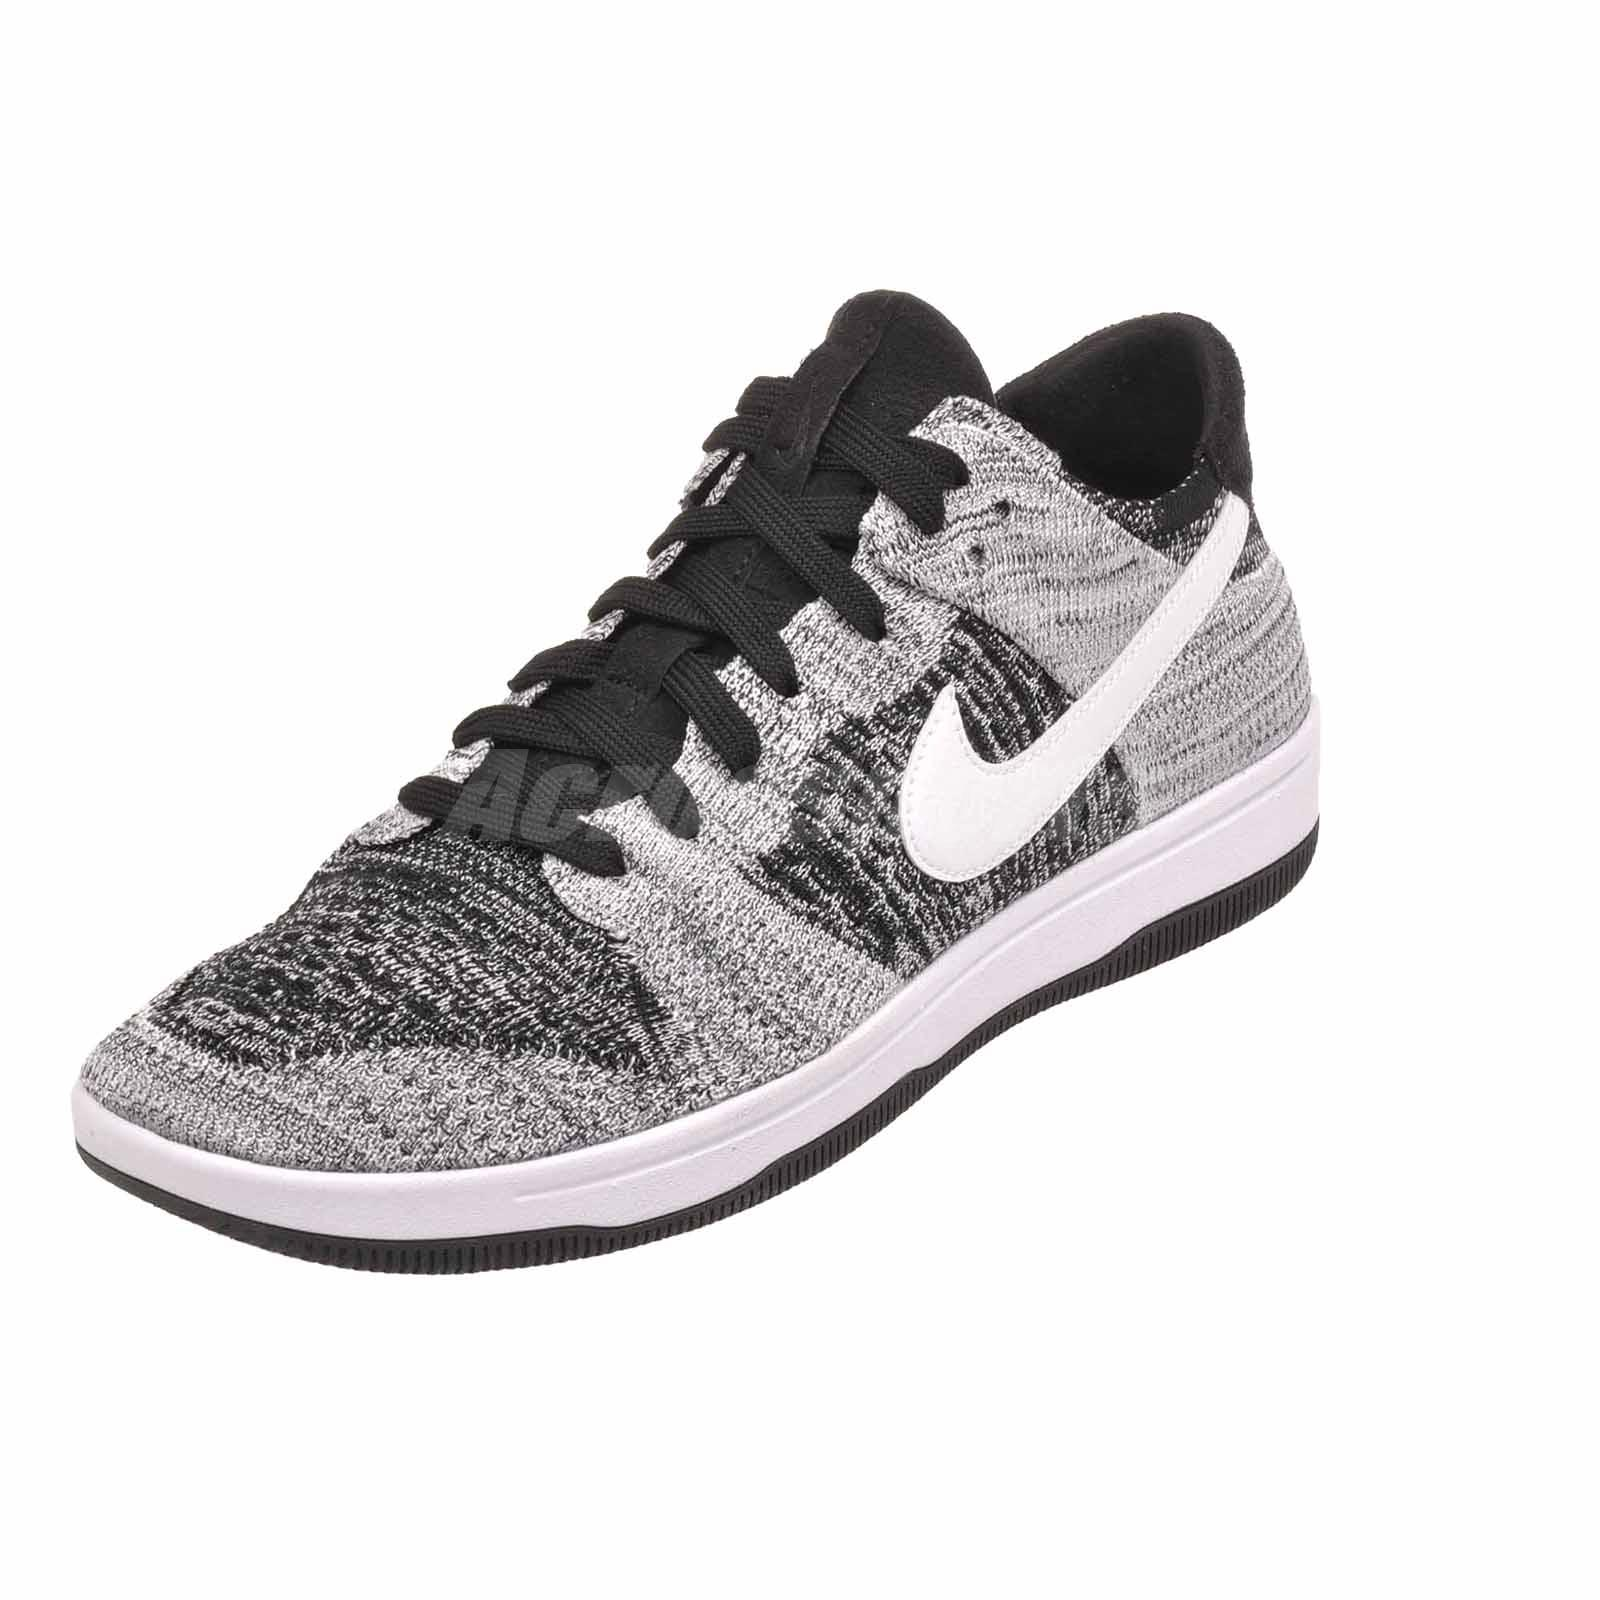 790dde8eb963 Nike Dunk Flyknit Casual Mens Shoes Black White NWOB 917746-003